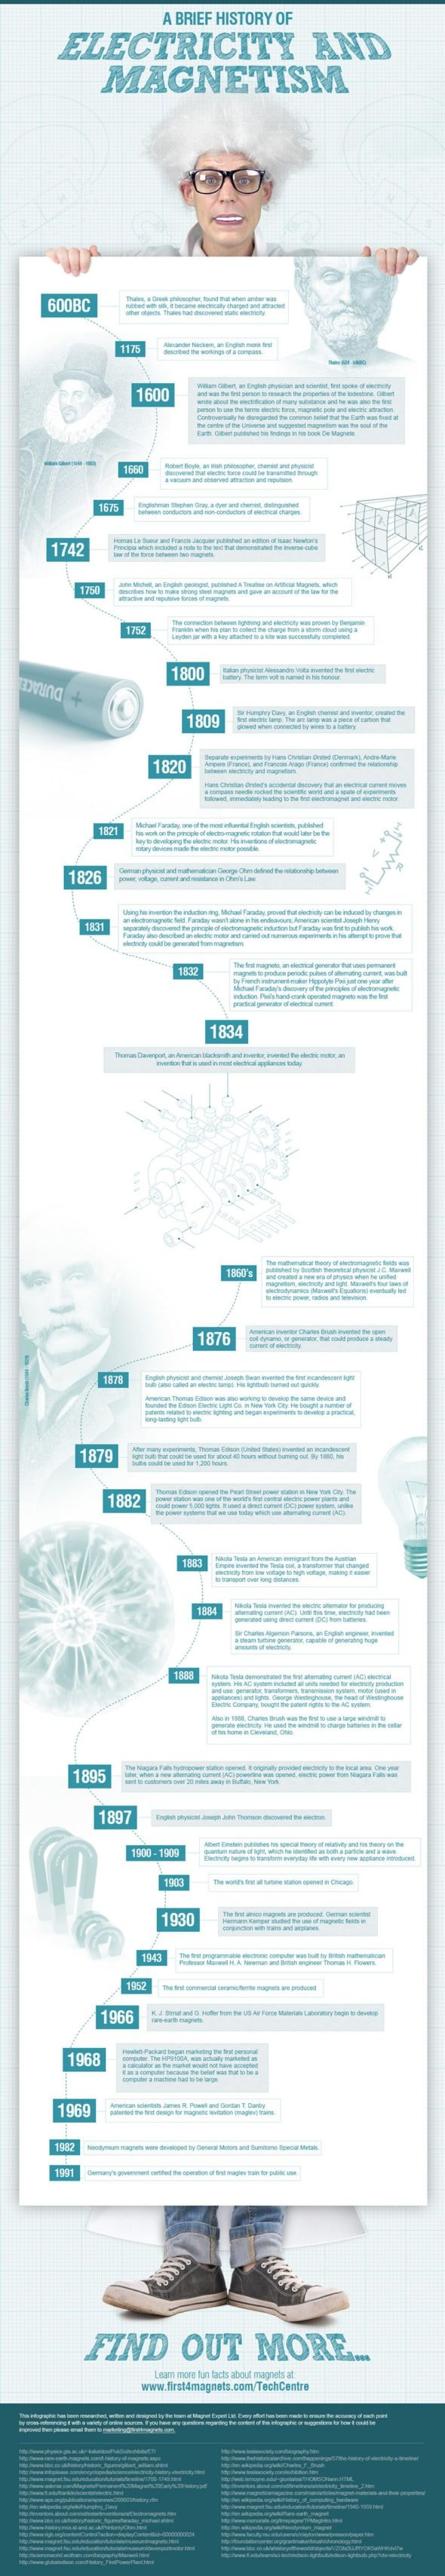 Infographic: A Brief History of Electricity & Magnetism